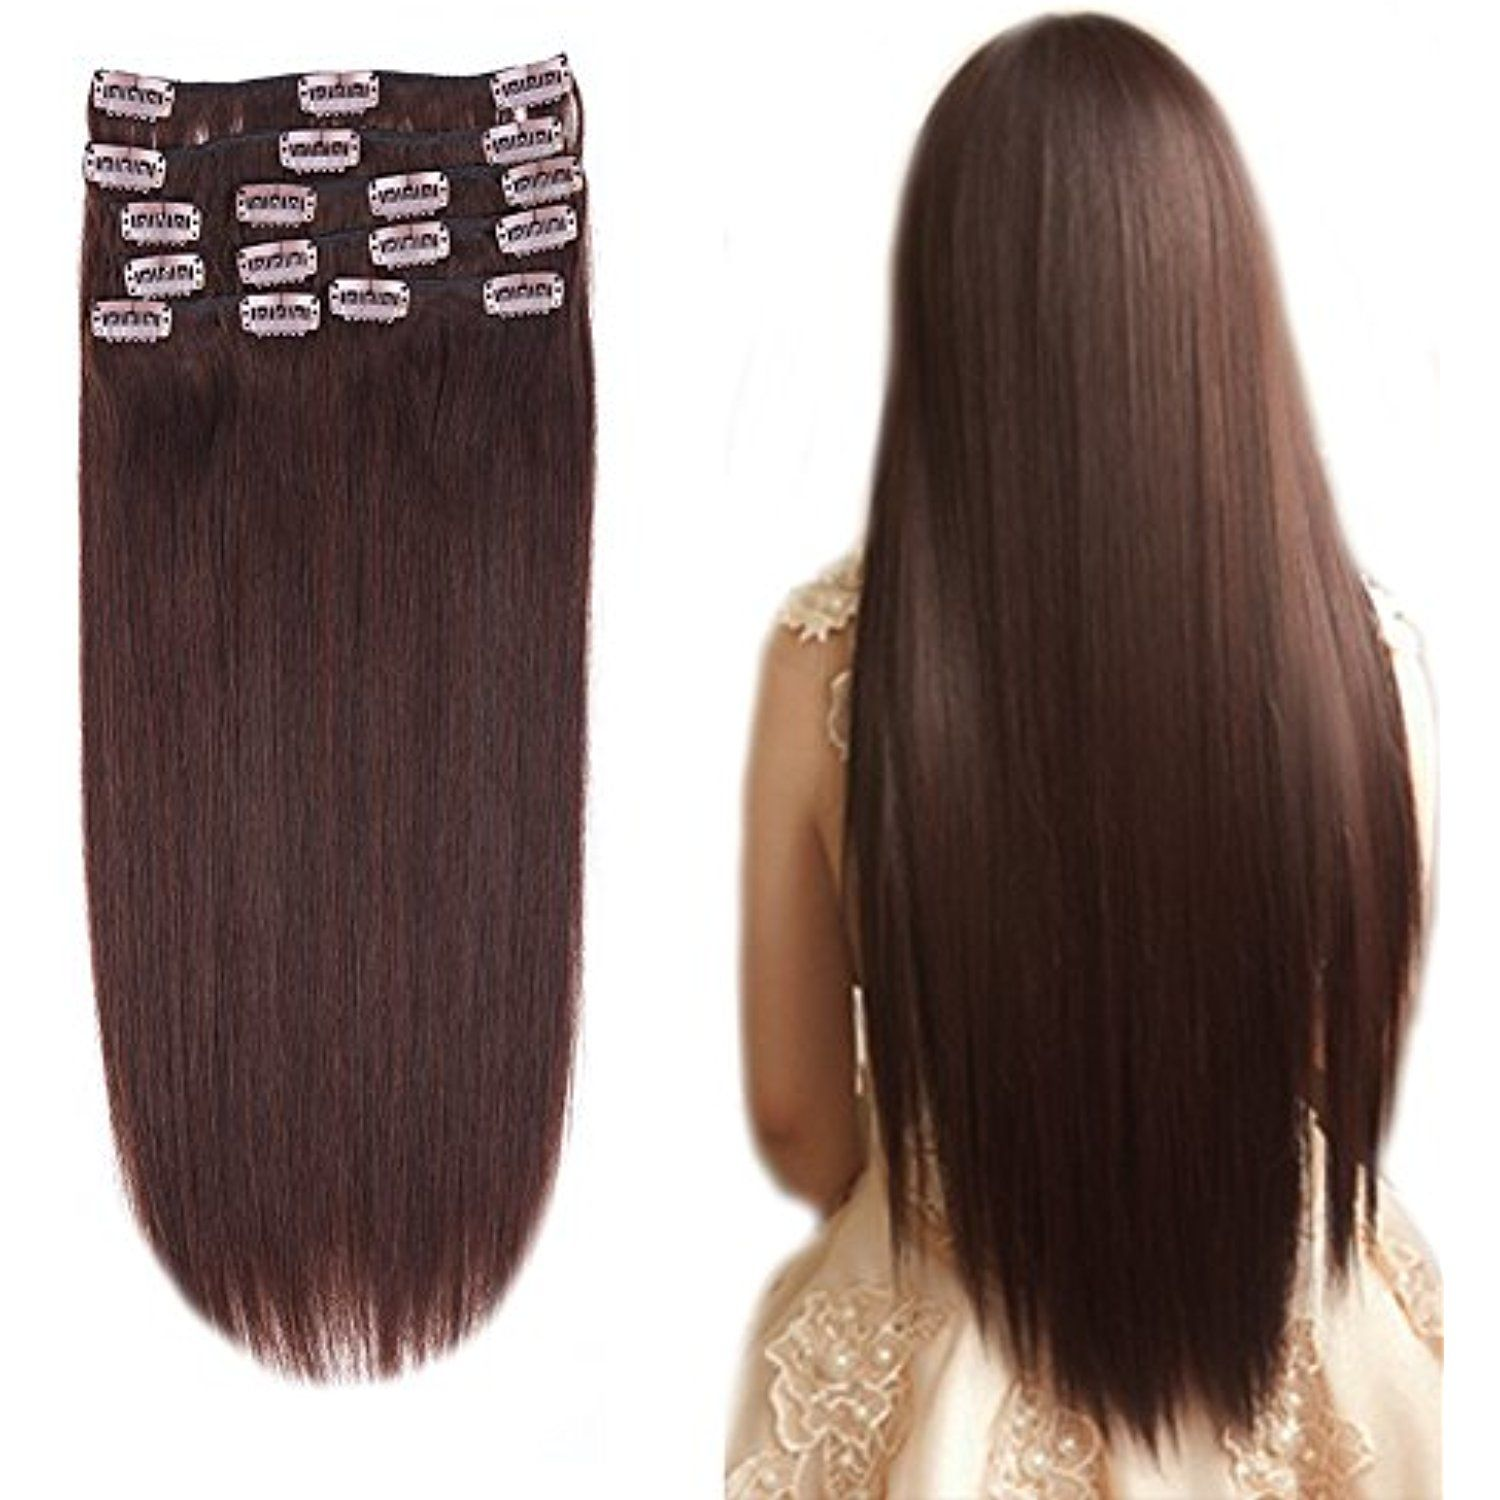 1222inch Clip in Remy Human Hair Extensions PersonalCare